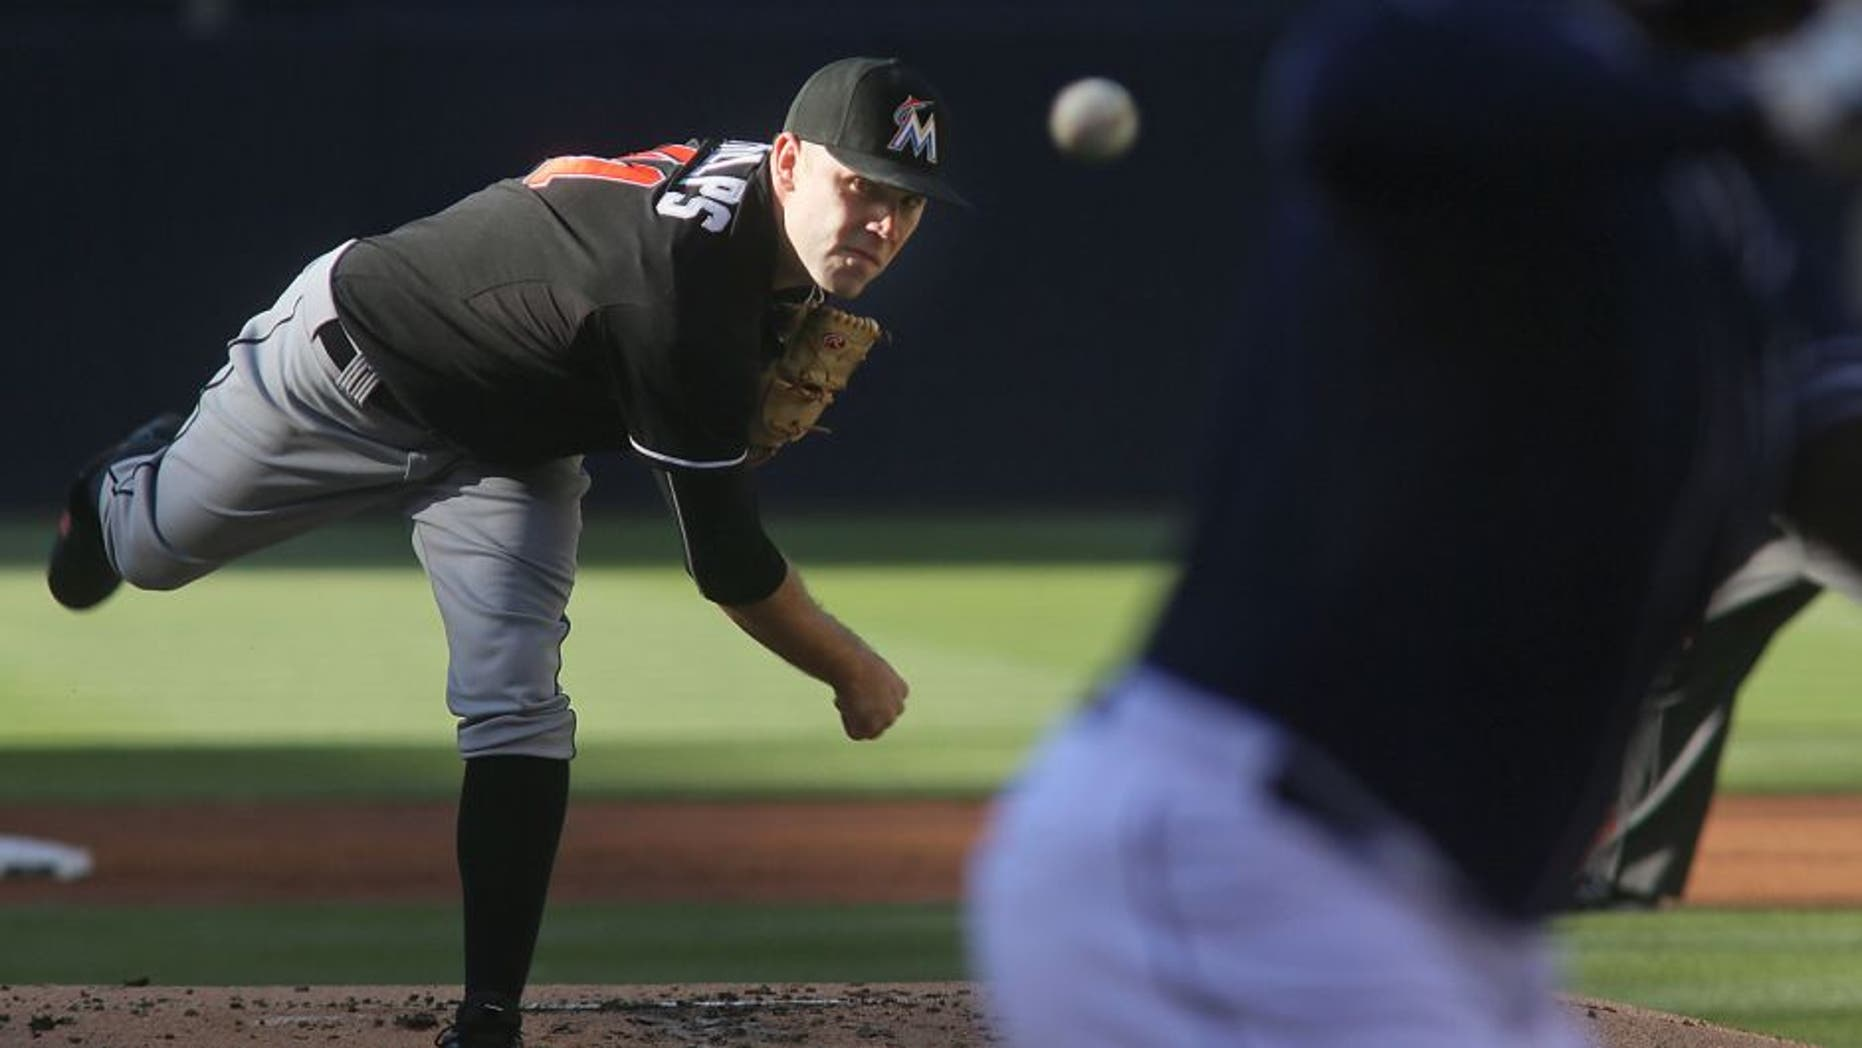 Miami Marlins starting pitcher David Phelps throws to a San Diego Padres batter during the first inning of a baseball game Saturday, July 25, 2015, in San Diego. (AP Photo/Sandy Huffaker)